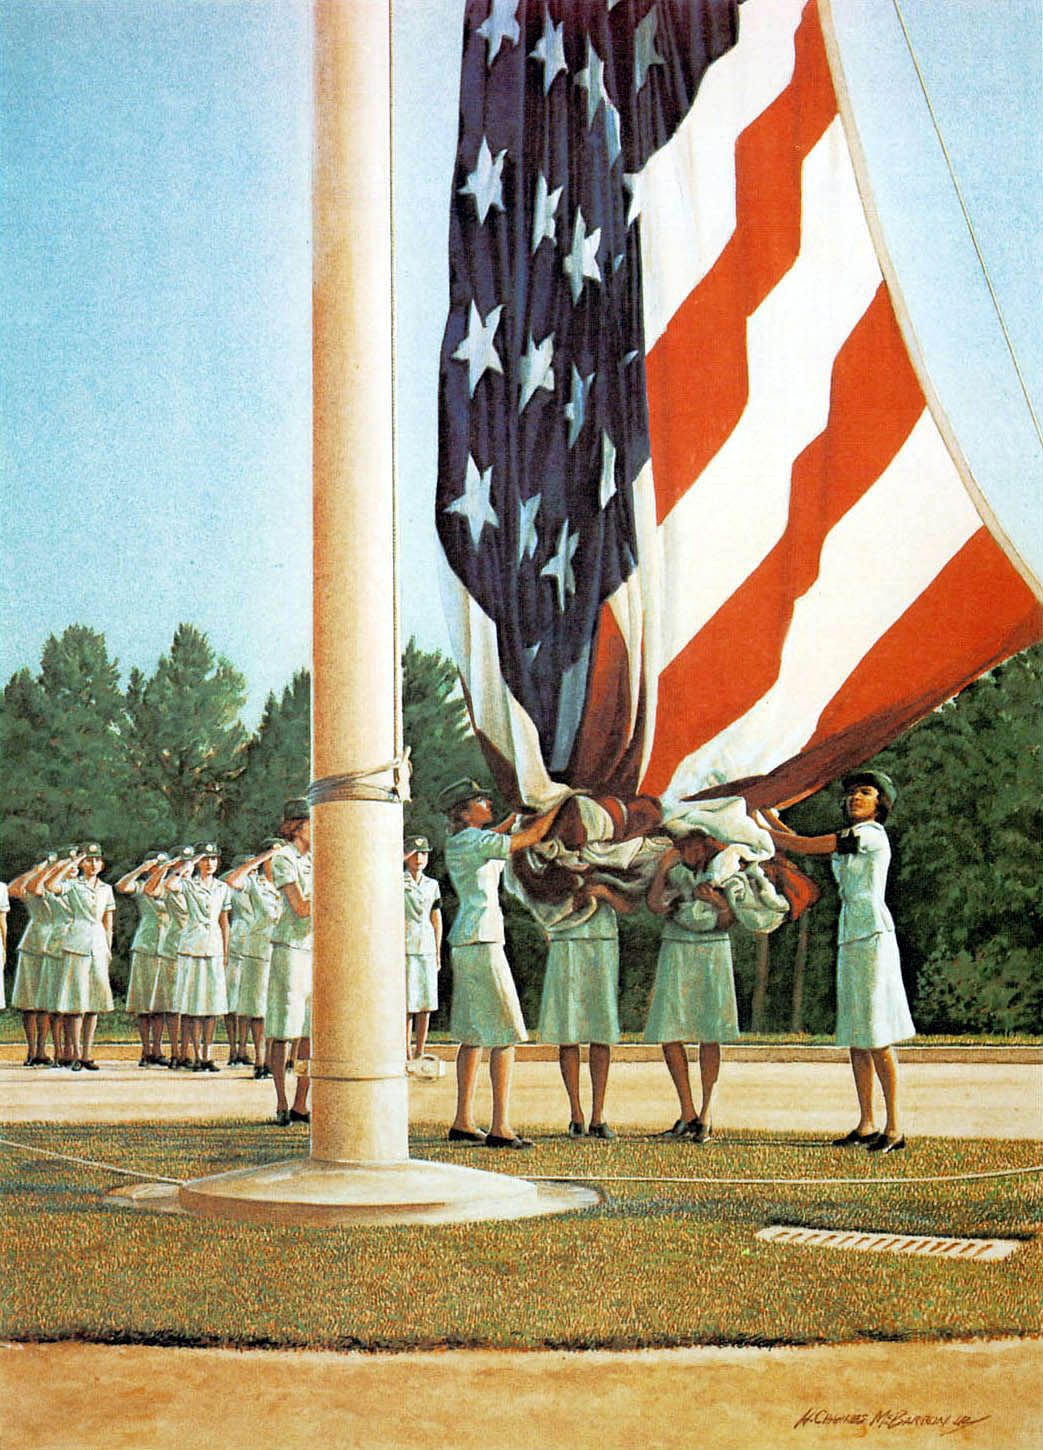 Women S Army Corps Taking Down The Largest Flag A Garrison Flag Flown Only On Very Special Occassions Women S Army Corps Army Day Us Army Soldier